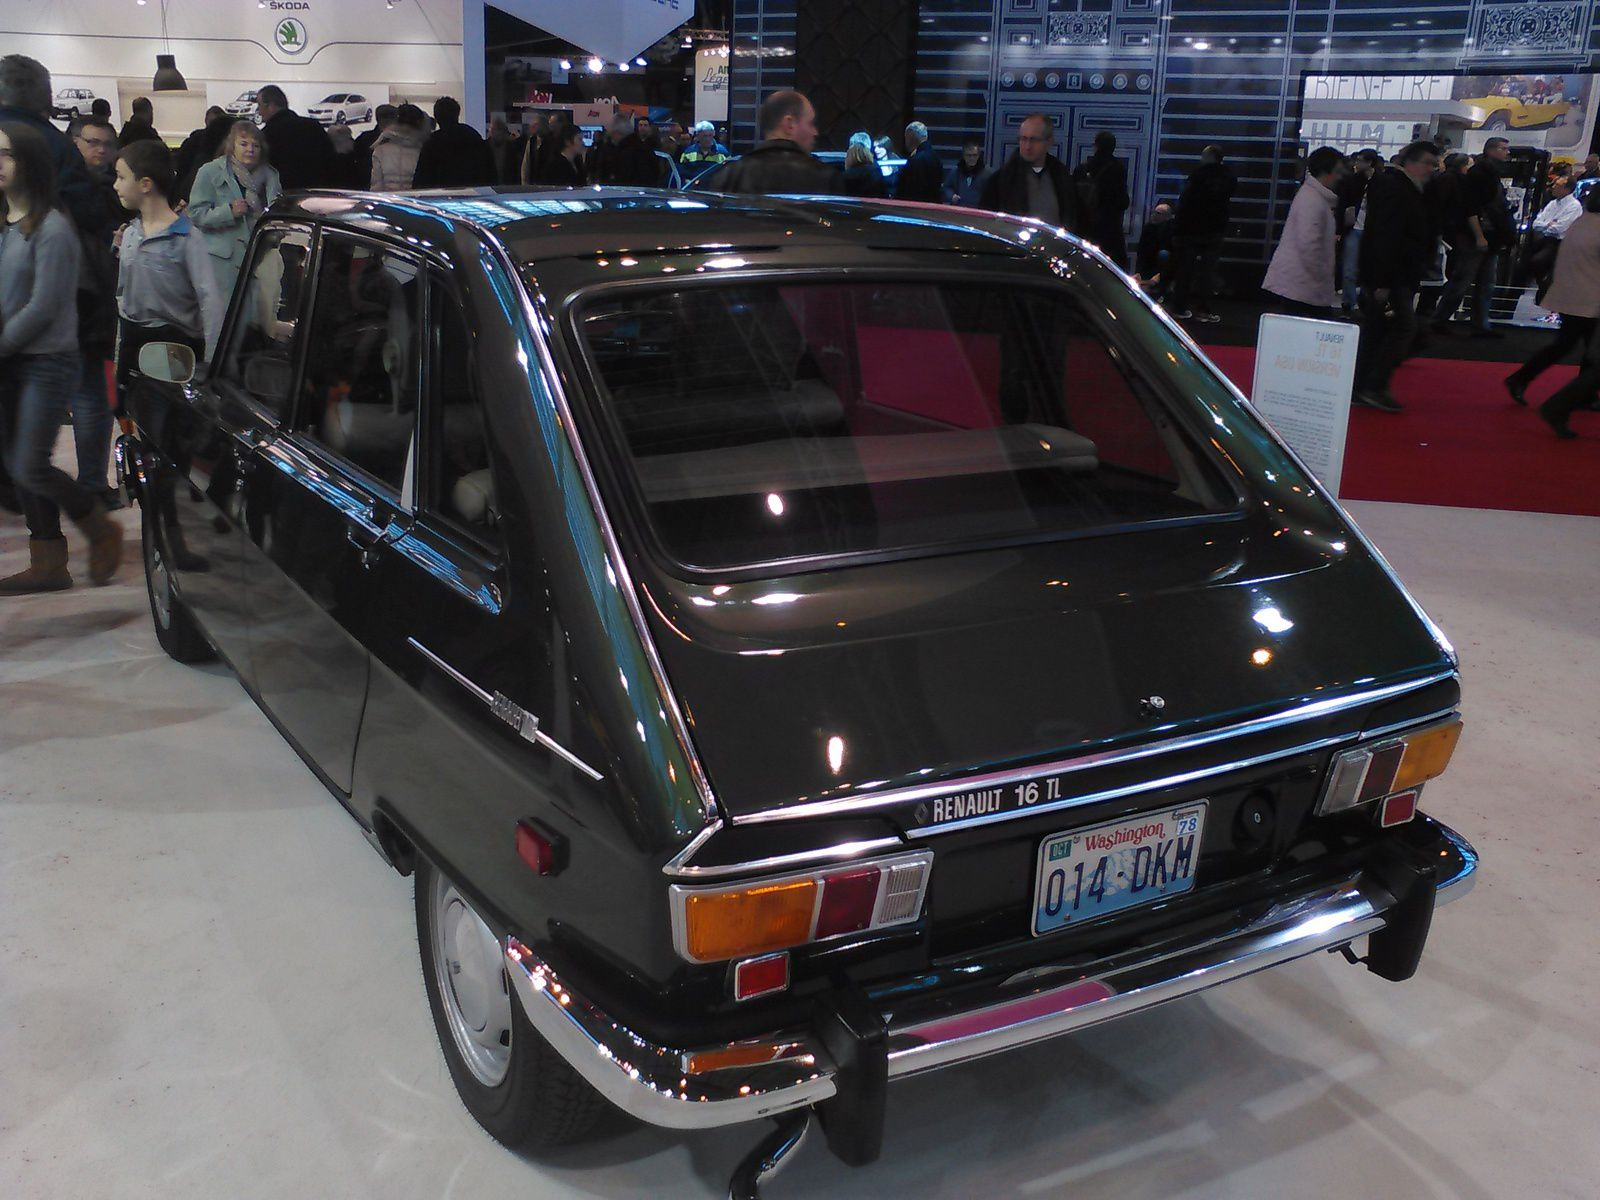 a renault 16 from the usa in paris france fcia french cars in america. Black Bedroom Furniture Sets. Home Design Ideas